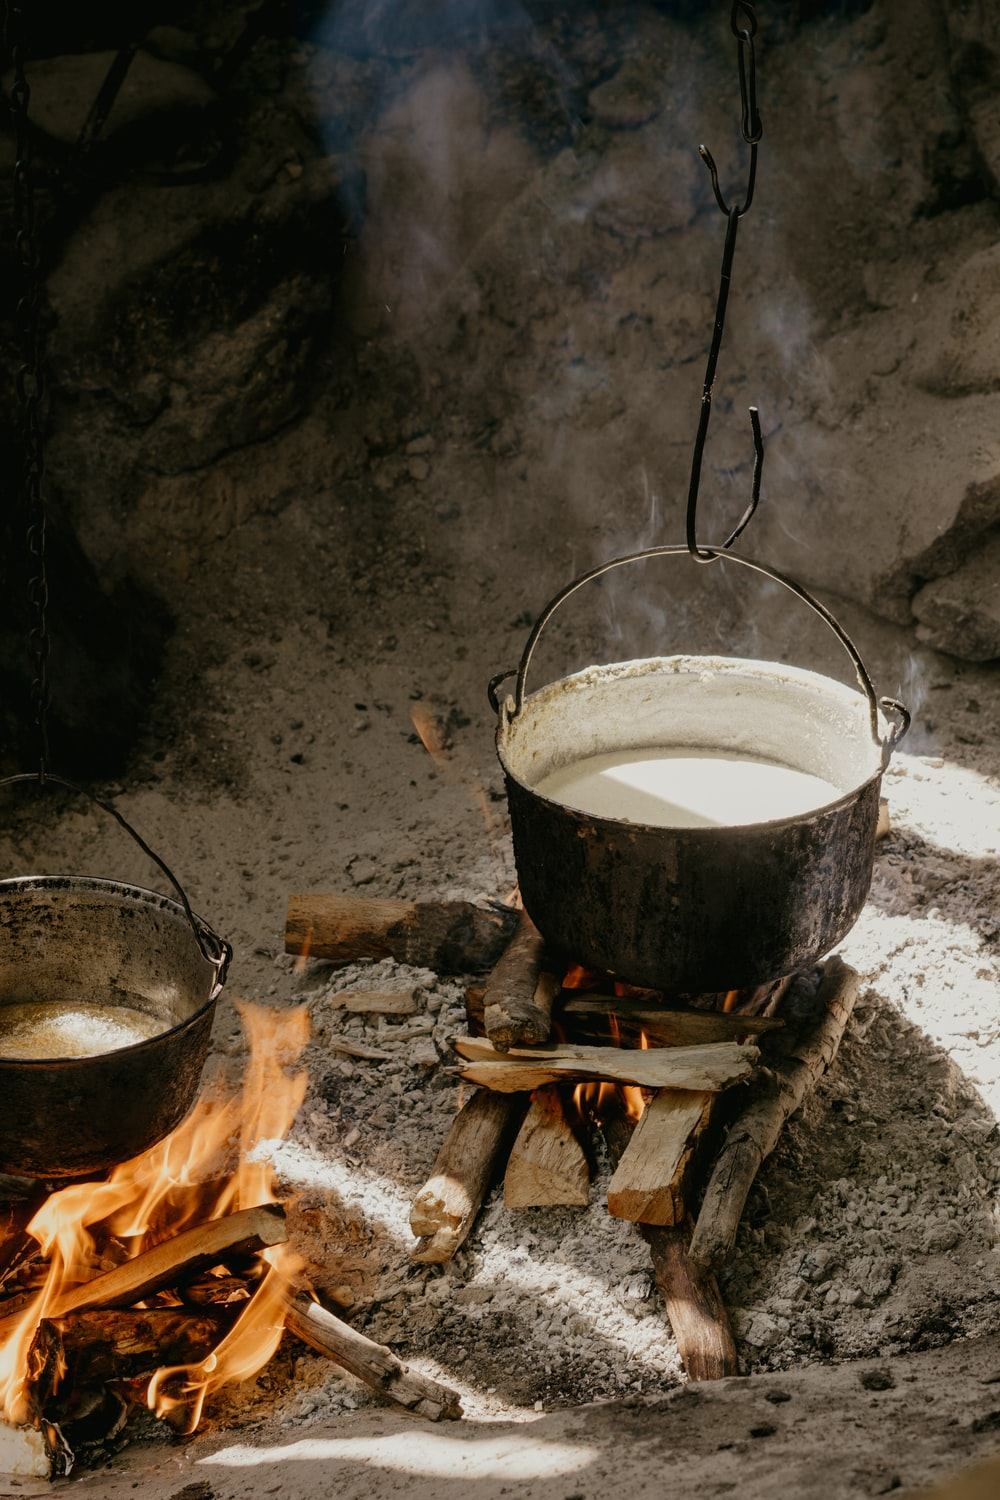 black cooking pot on fire